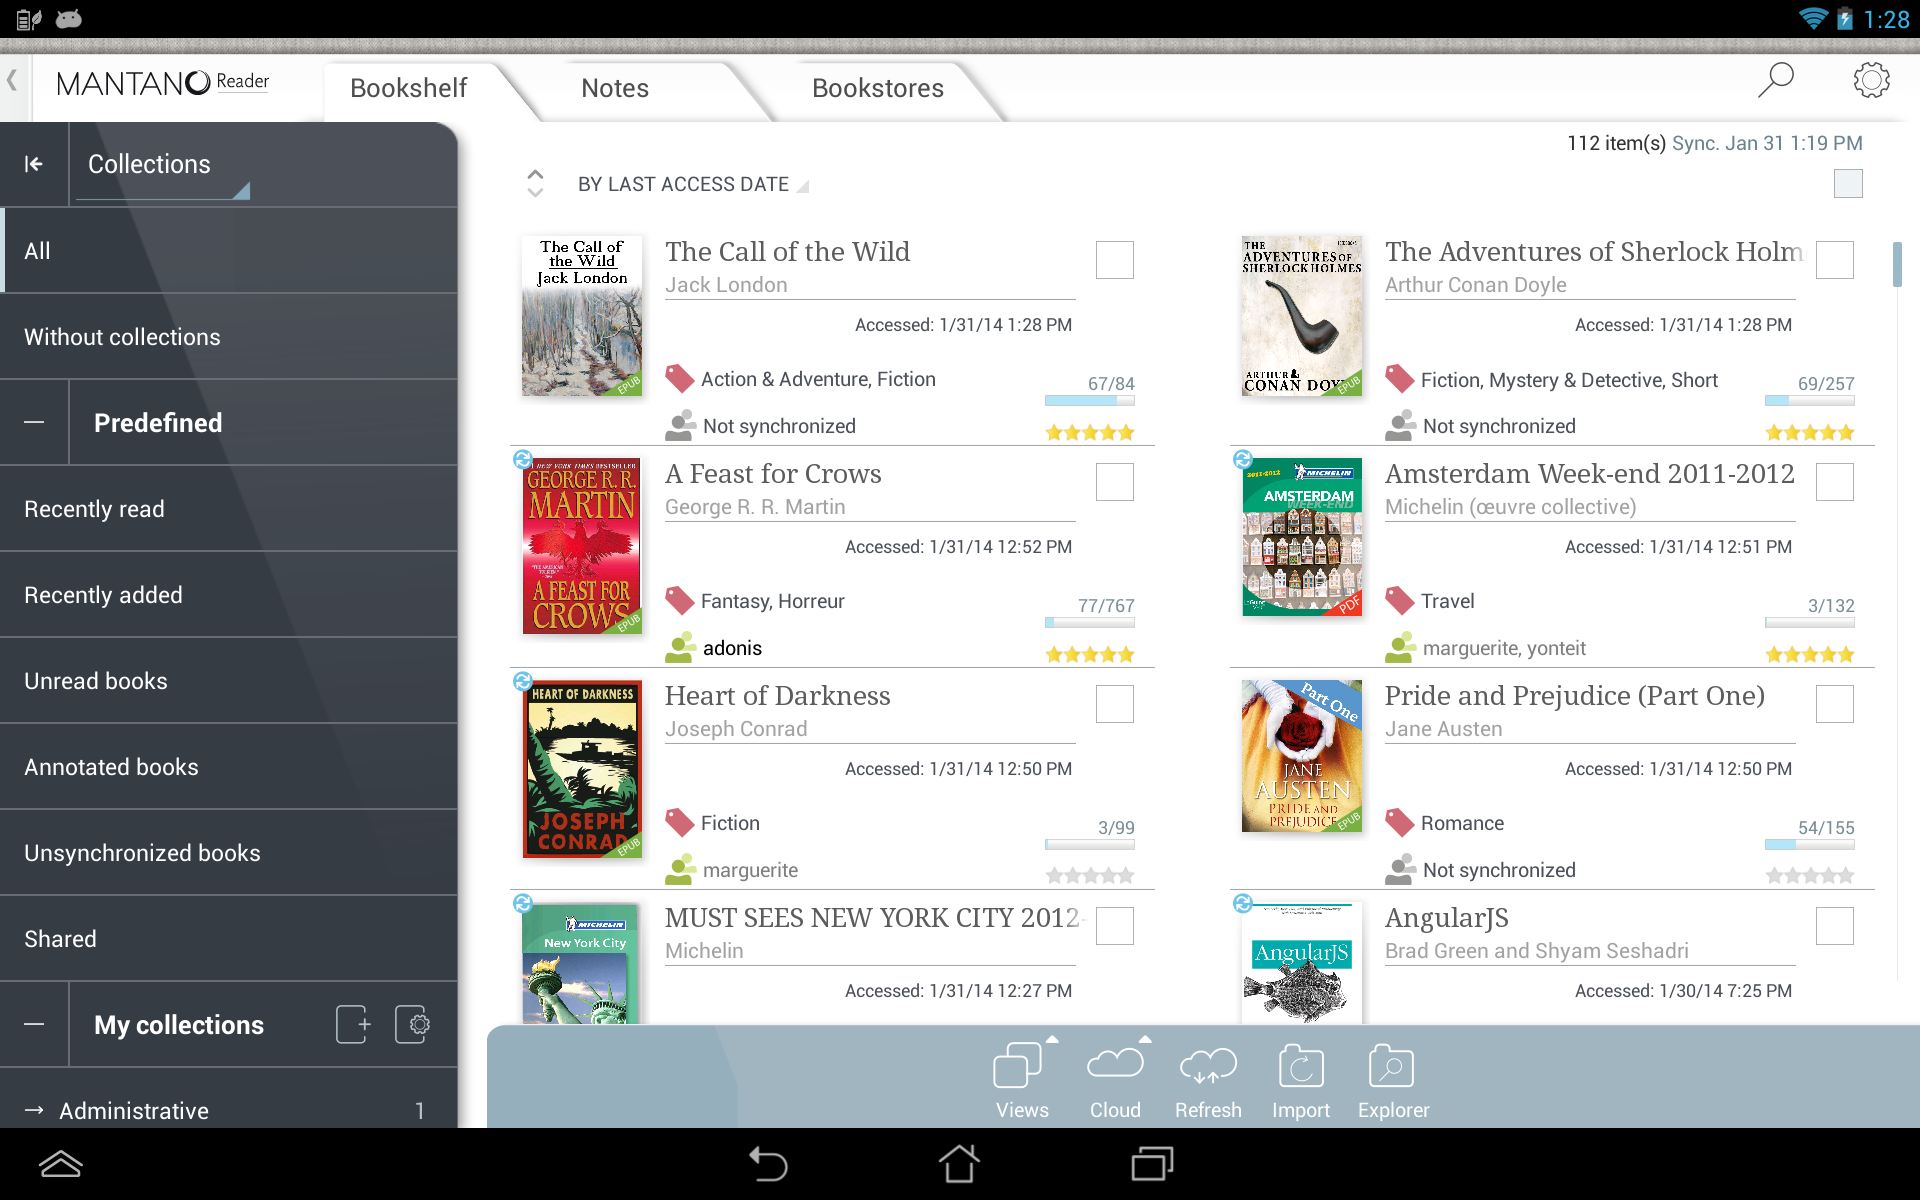 Bookari - Mantano Ebook Reader Premium APK Download Free